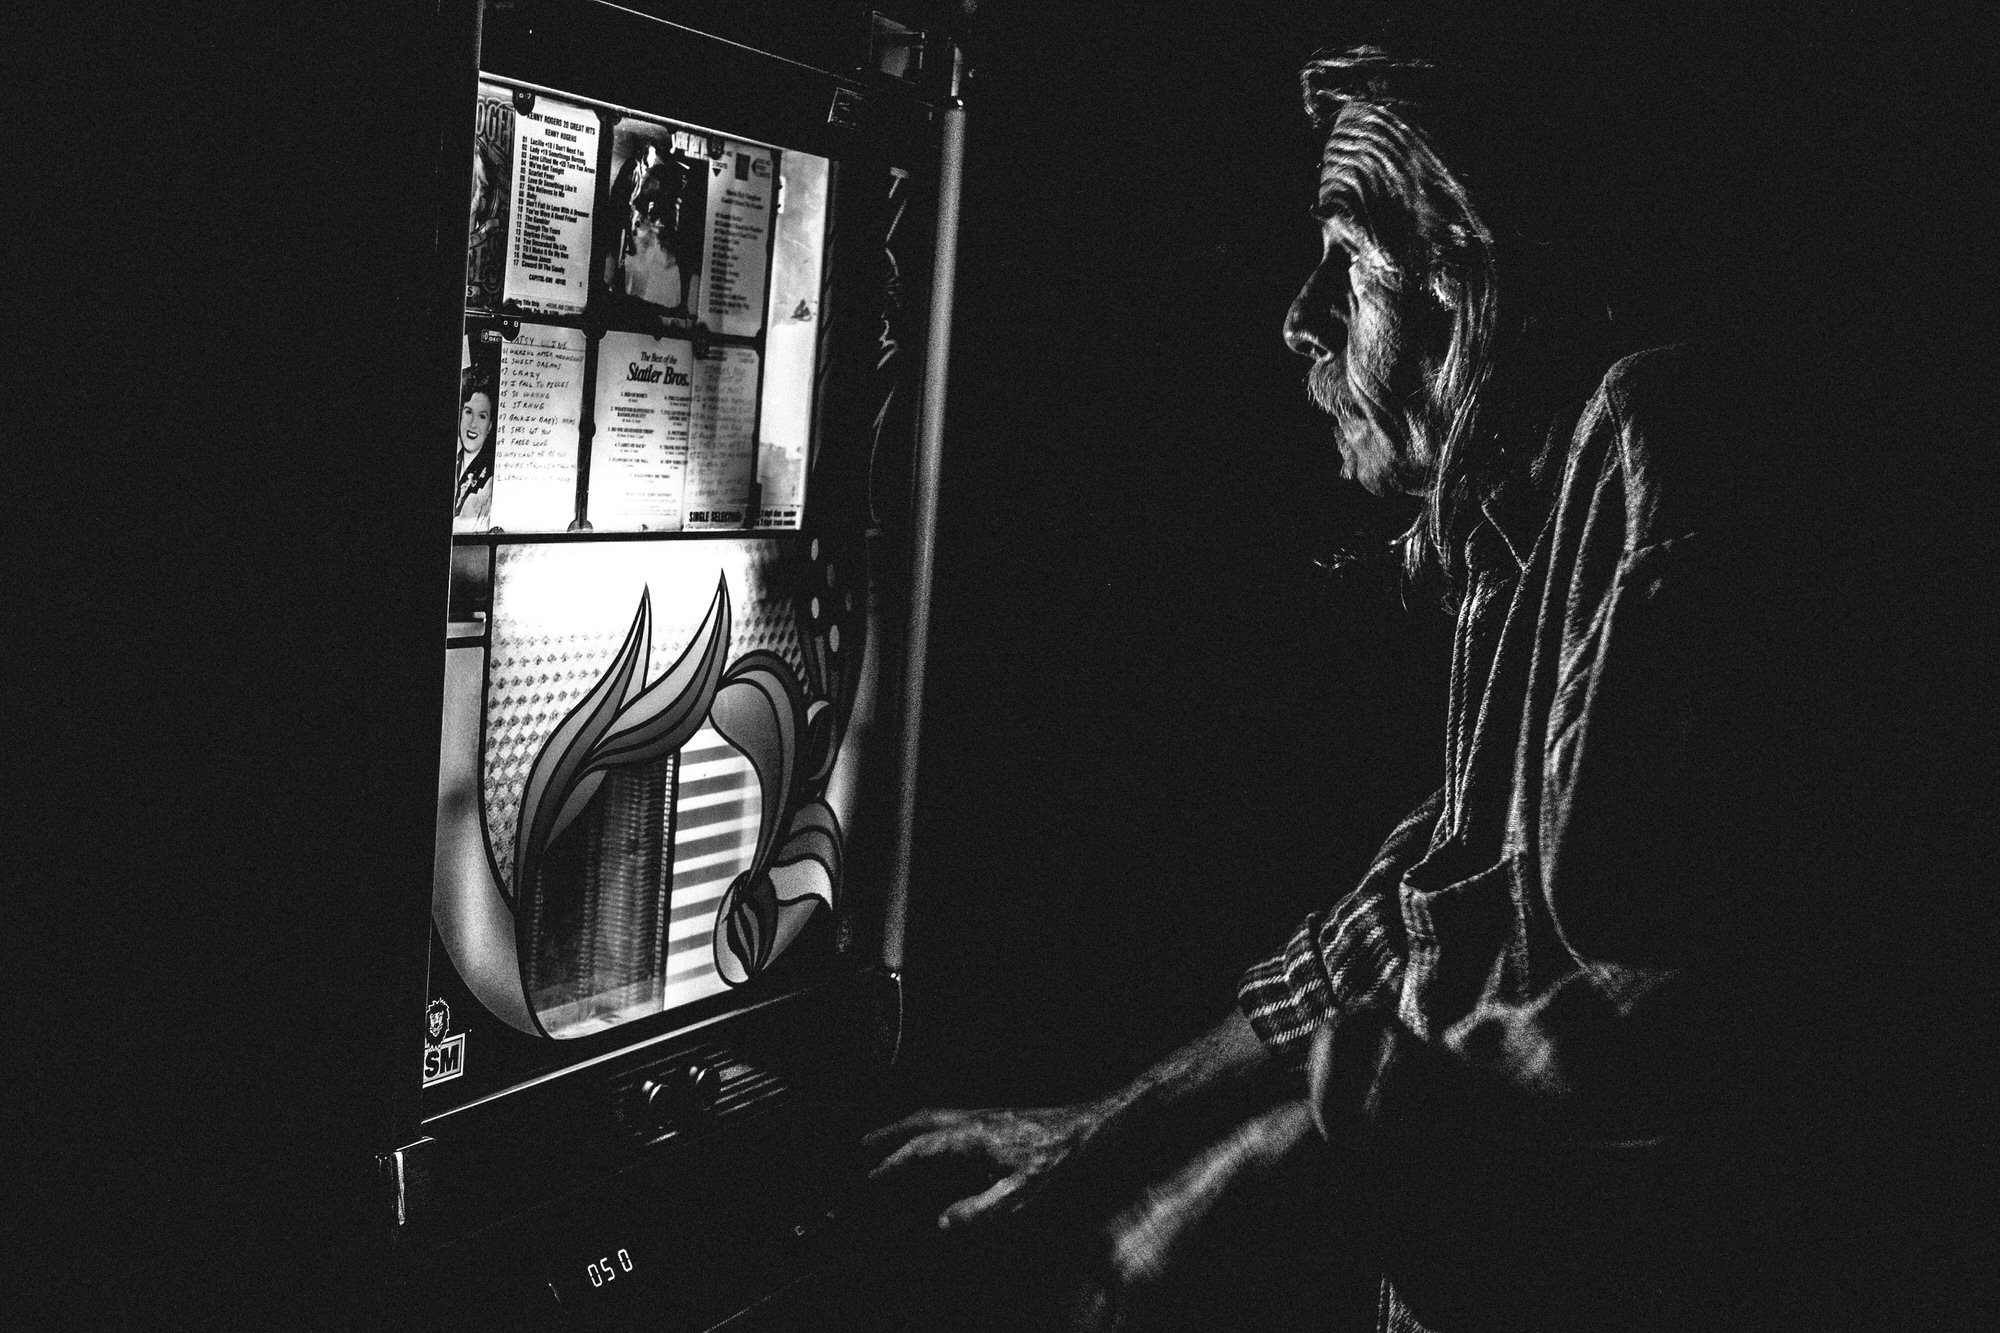 provincetown-the-old-colony-jukebox-2015-fujifilmxt1-eric-kim-street-photograpy-black-and-white-monochrome-10